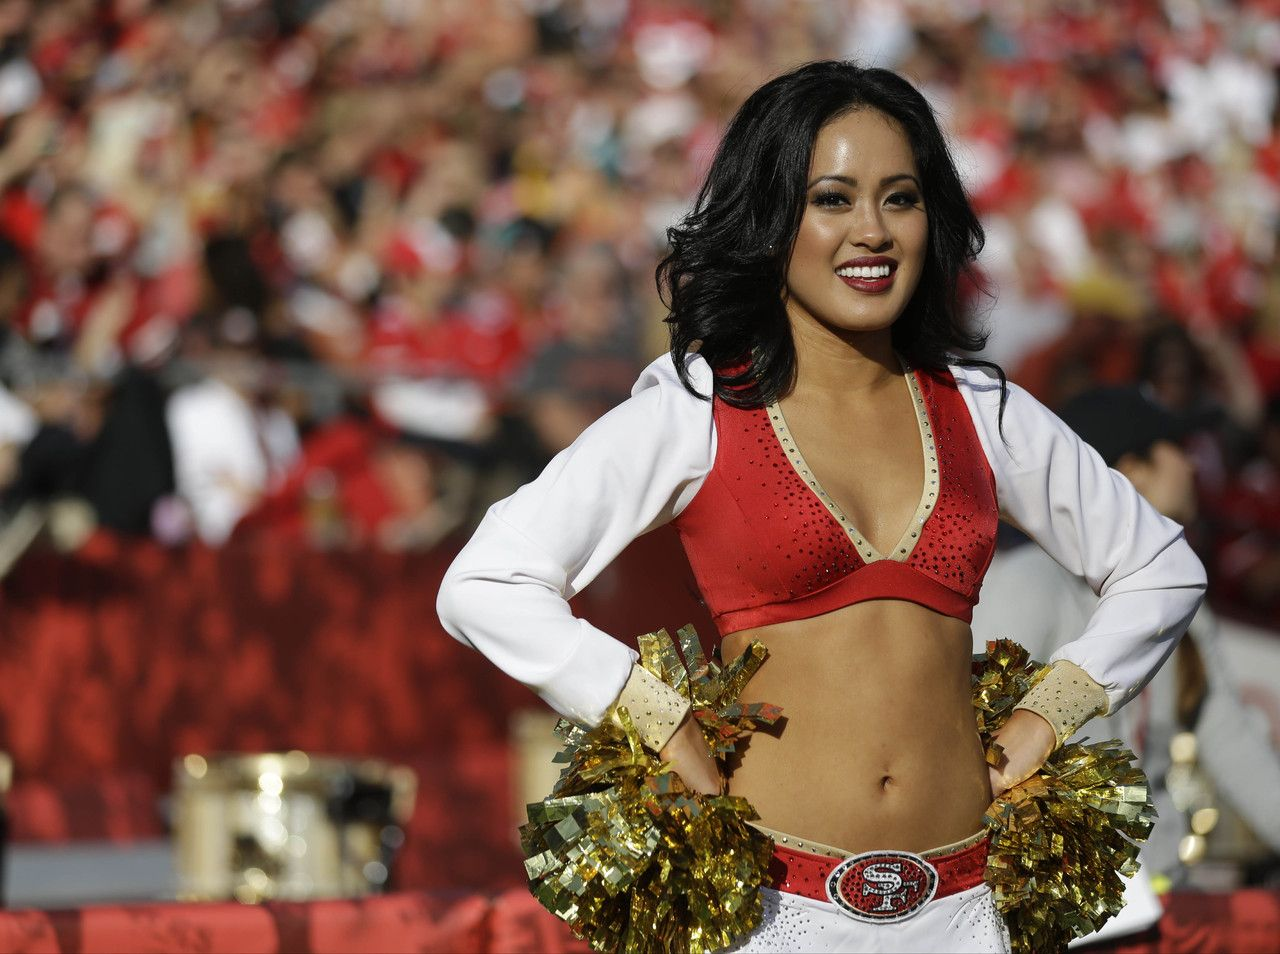 A San Francisco 49ers cheerleader performs during the second quarter of an NFL football game against the Miami Dolphins in San Francisco, Sunday, Dec. 9, 2012. (AP Photo/Marcio Jose Sanchez)